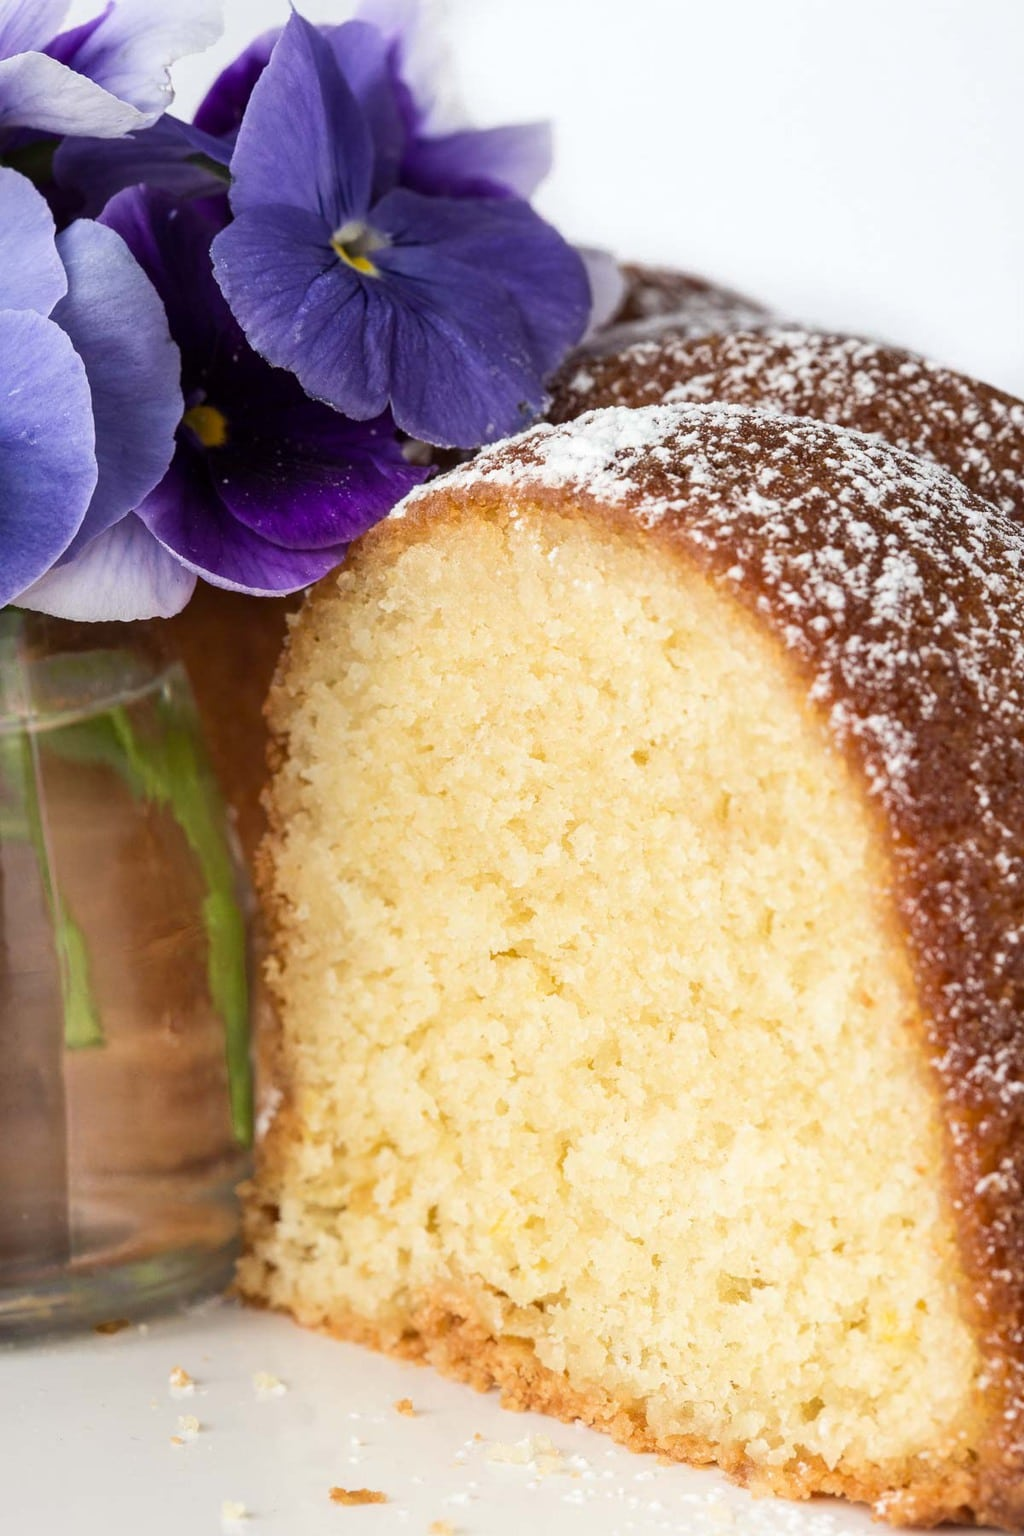 Closeup photo of the side of a Lemon Buttermilk Pound Cake with a glass jar with pansies in the center of the cake.